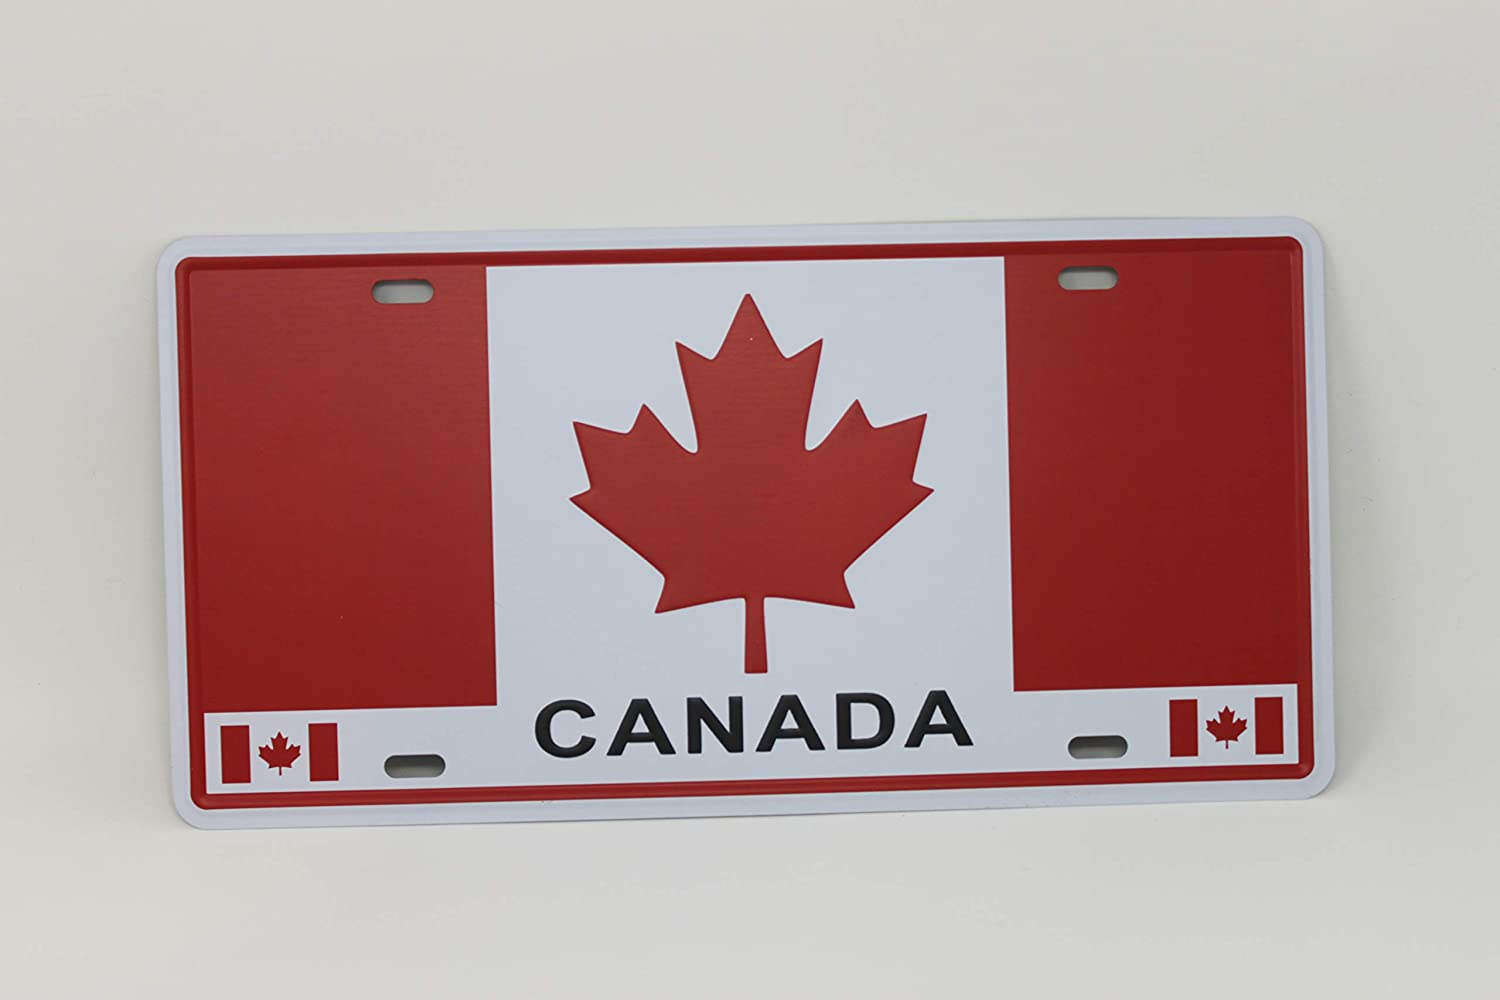 Canada Metal Licence Plate 12 by 6